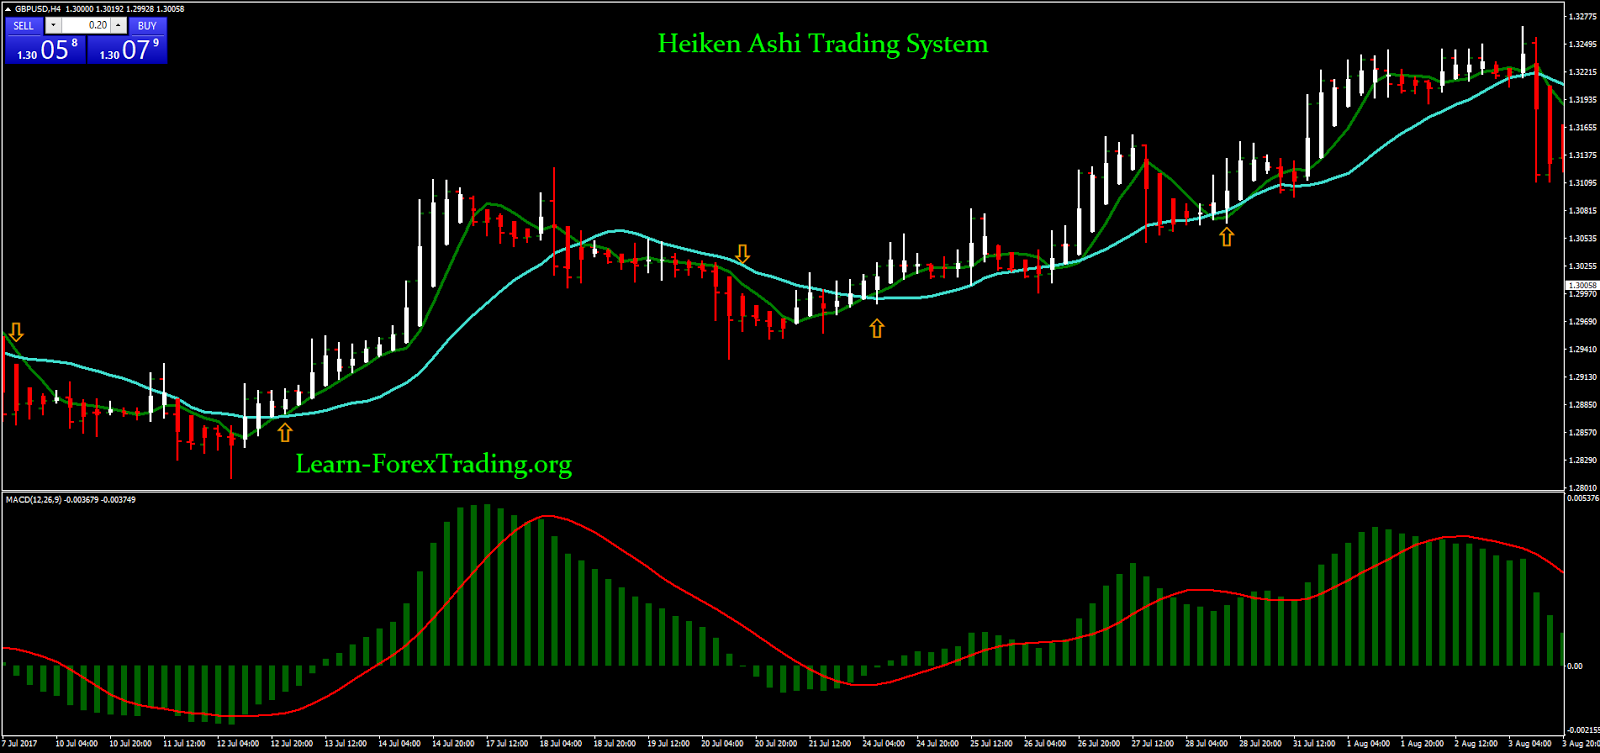 Heiken Ashi Trading System | Learn Forex Trading